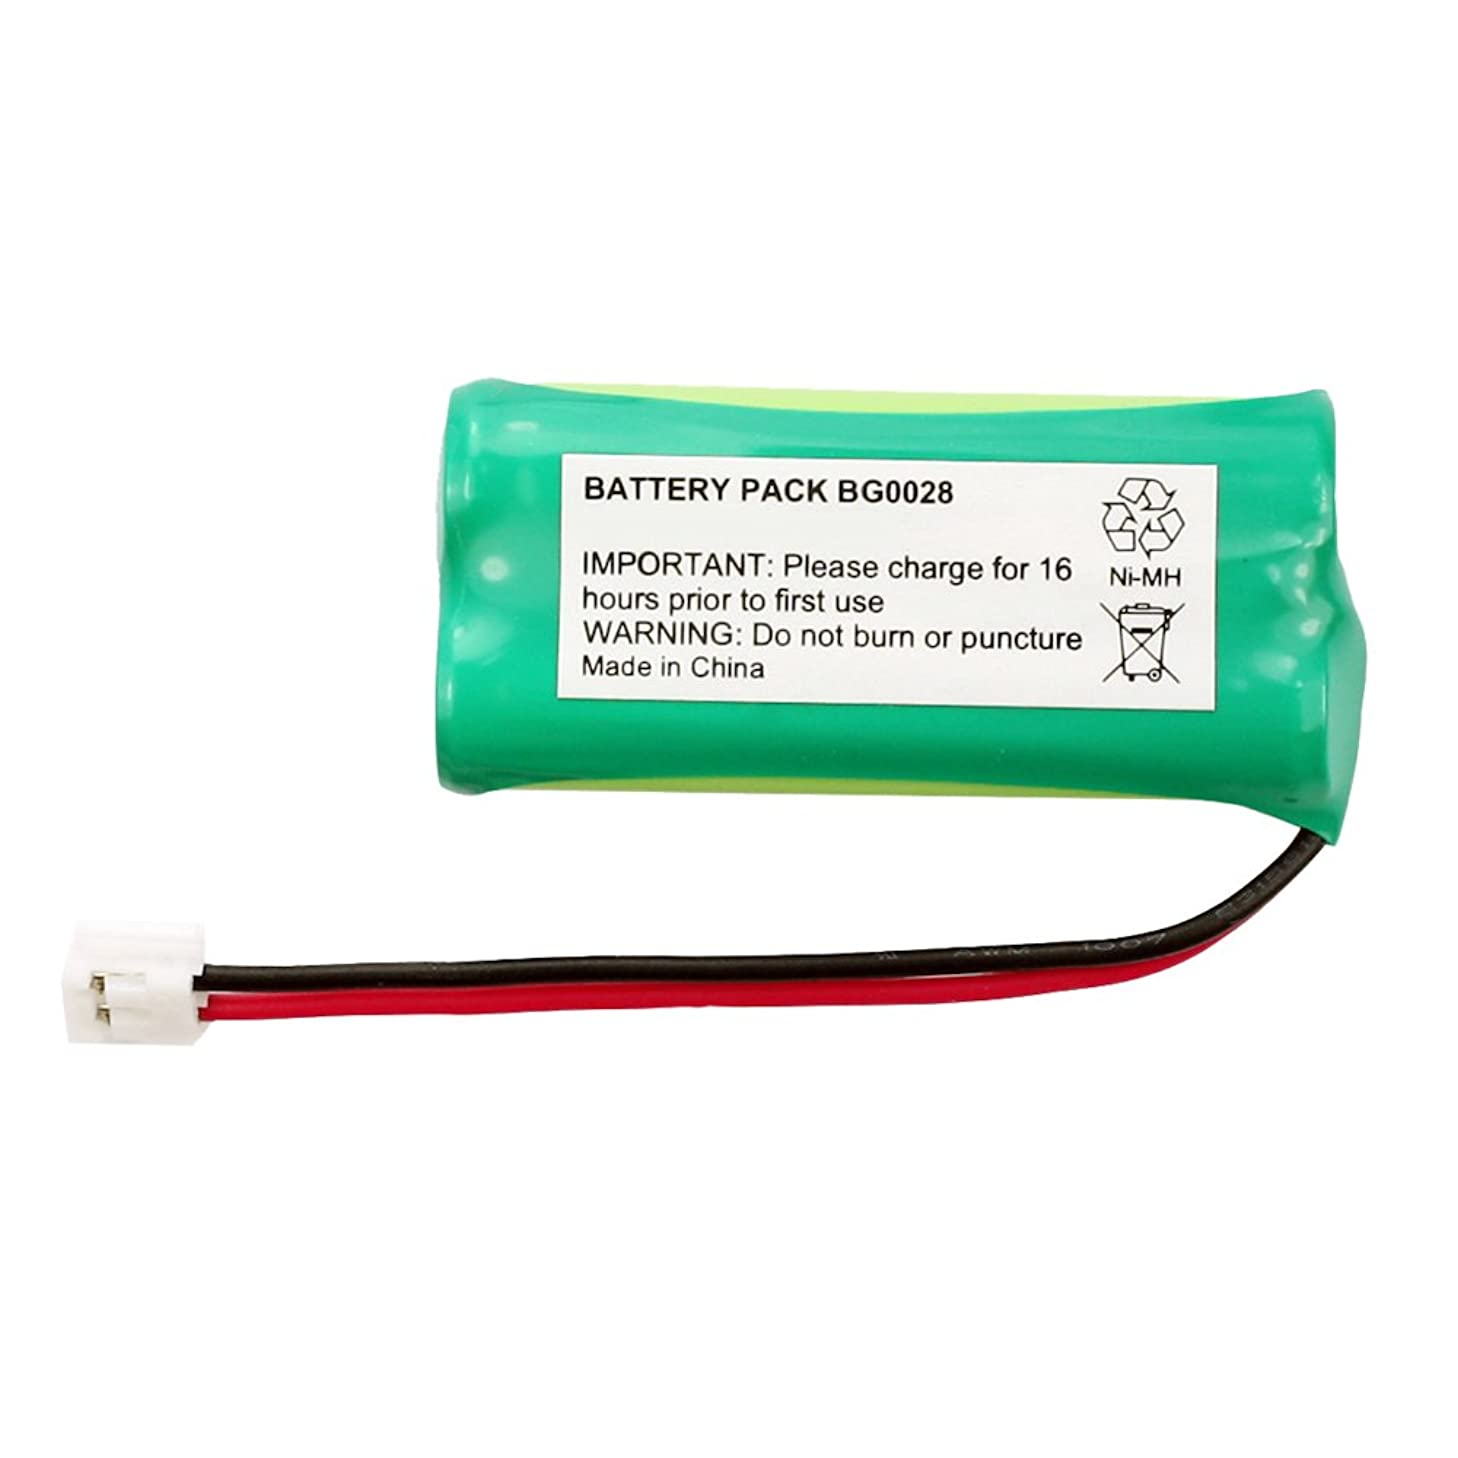 Fenzer Rechargeable Cordless Phone Battery for Radio Shack 23-546 23-930 Cordless Telephone Battery Replacement Pack